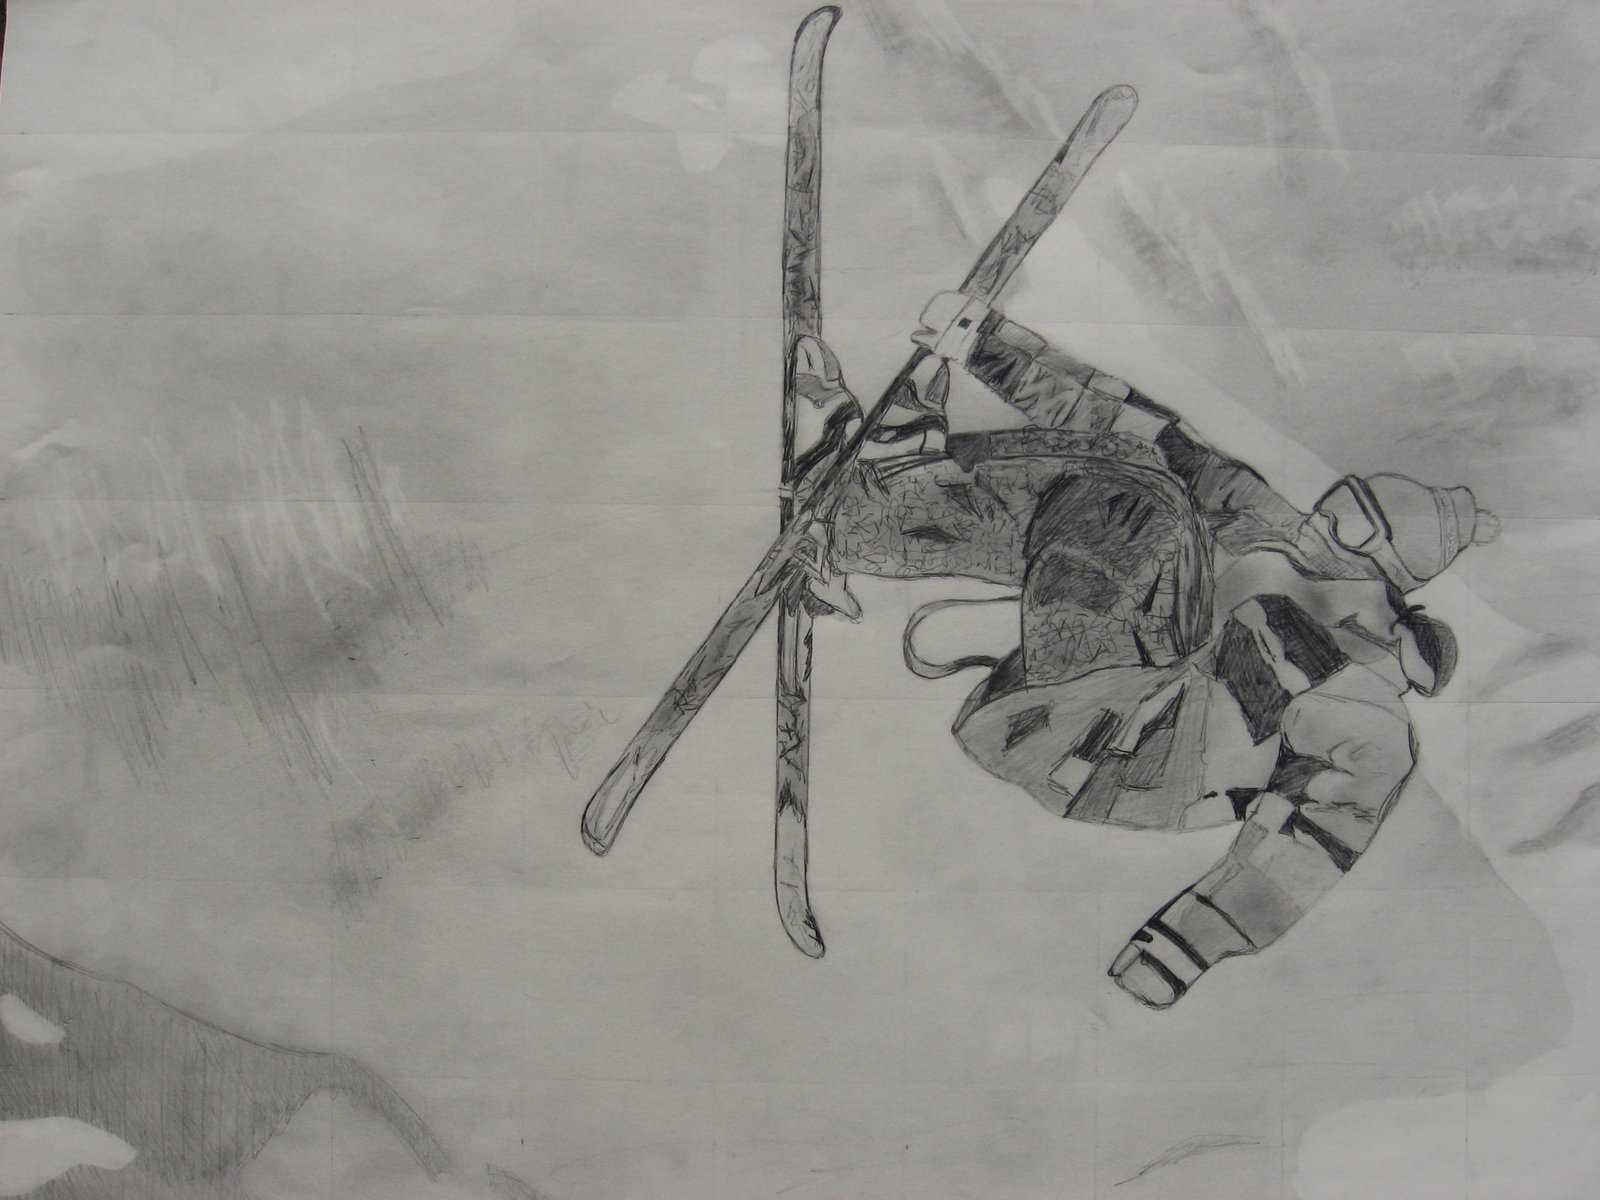 Drawing of a skier